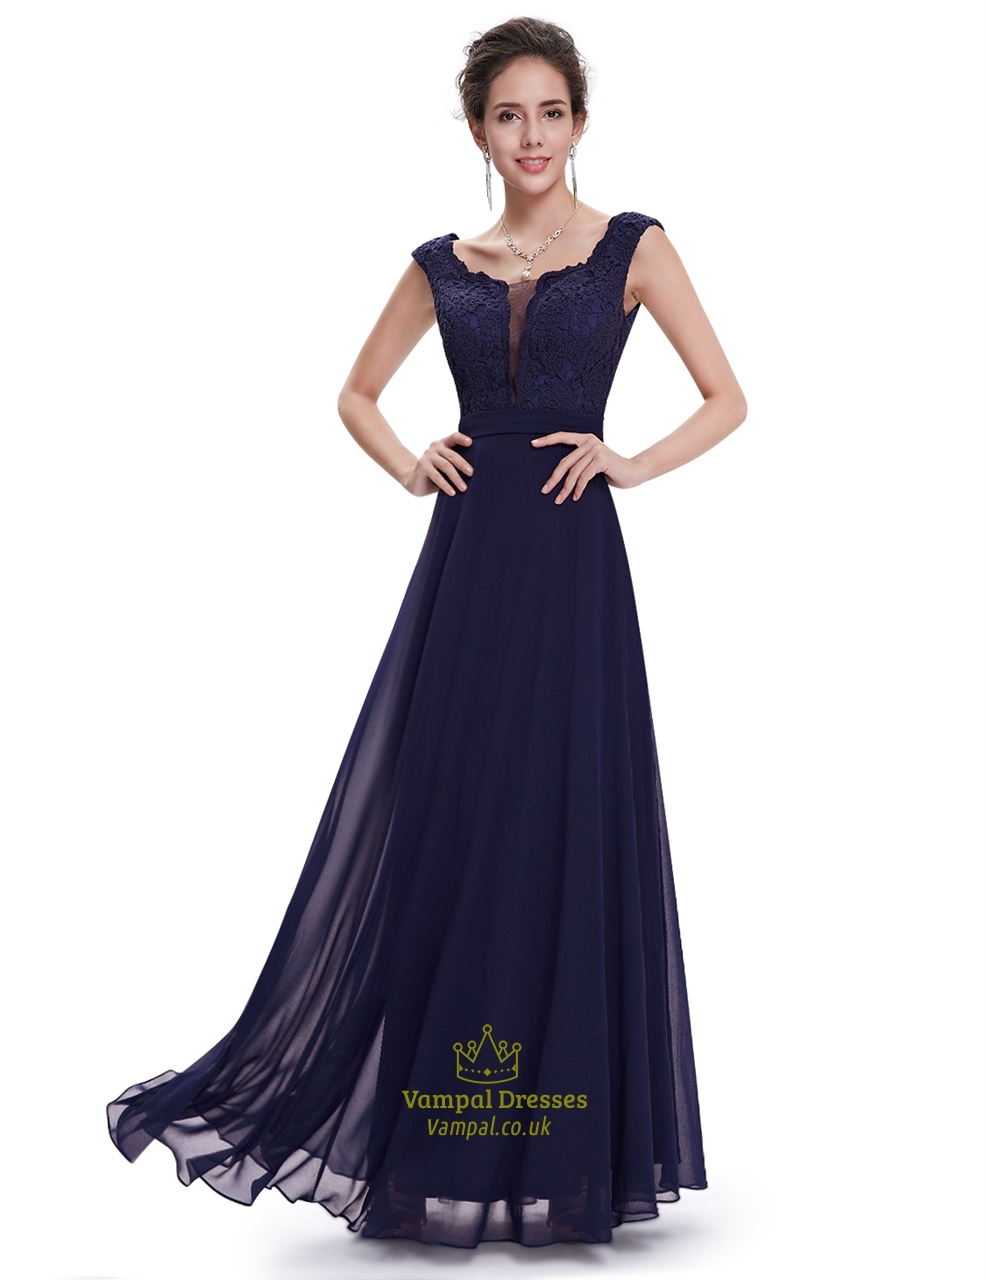 Navy Blue Bridesmaids Dresses With Sleeves : Navy blue chiffon cap sleeves long bridesmaid dresses with lace bodice